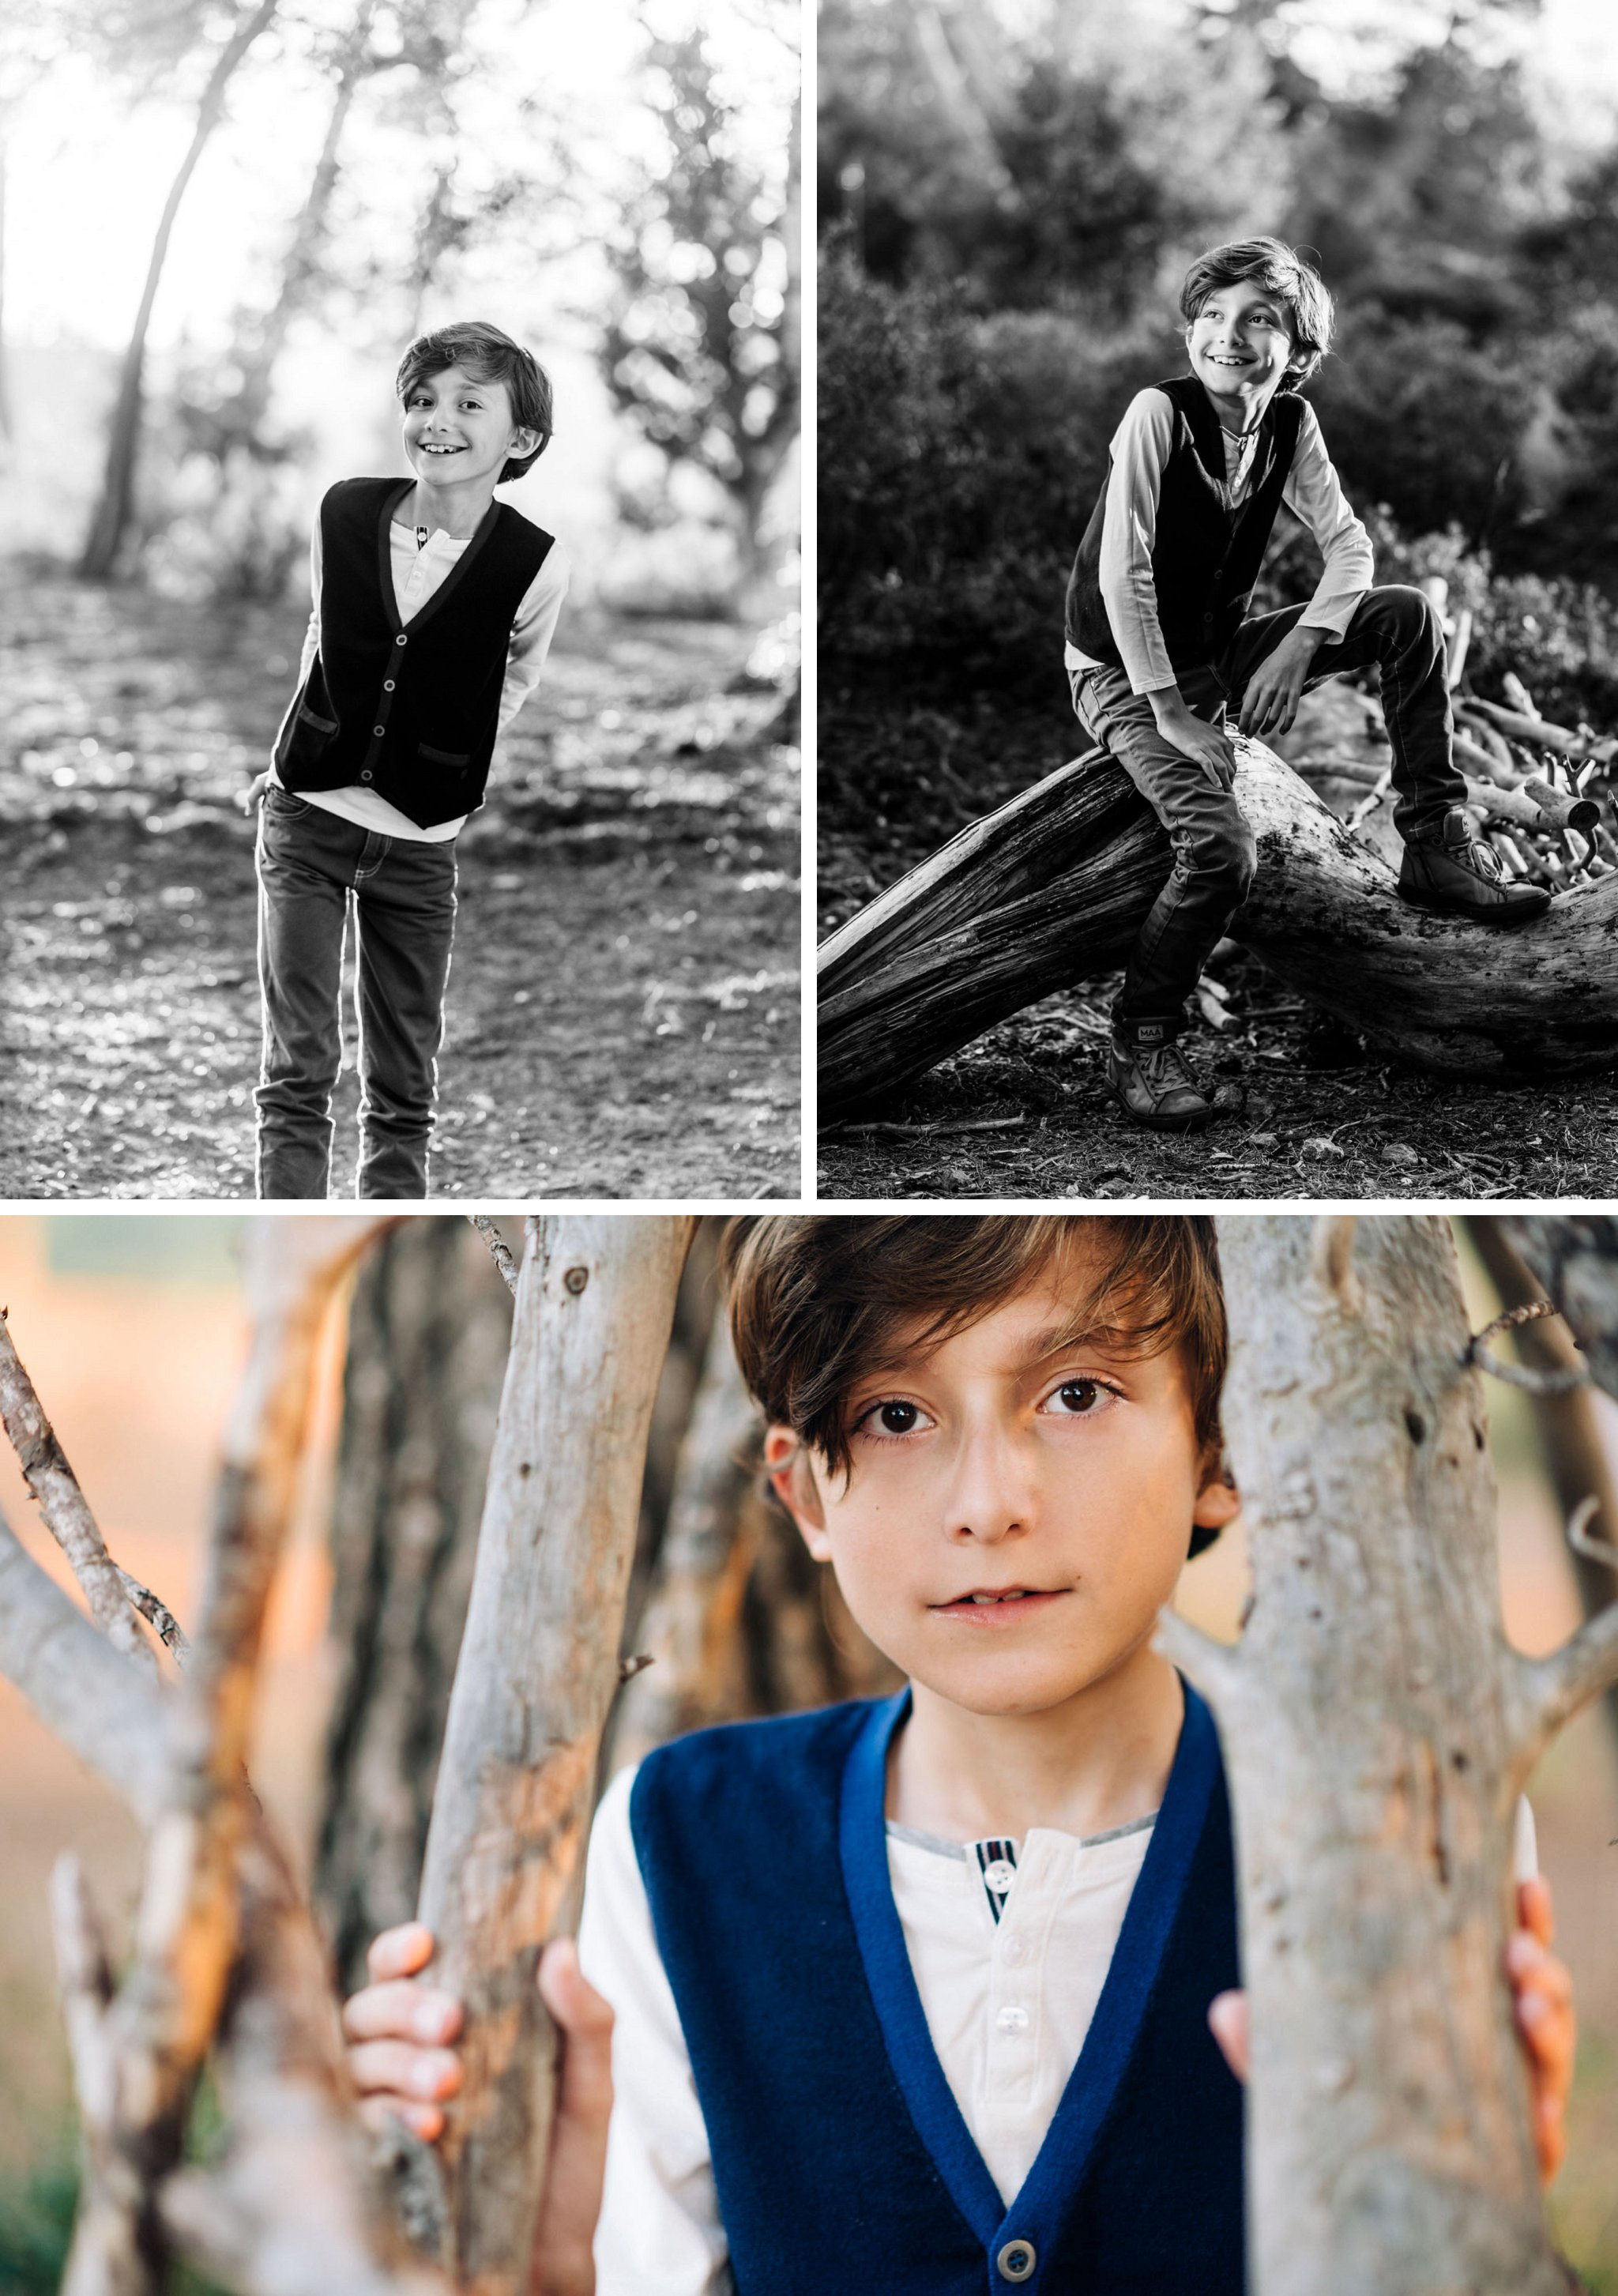 alessandro-seance-photo-enfant-nature-foret-2